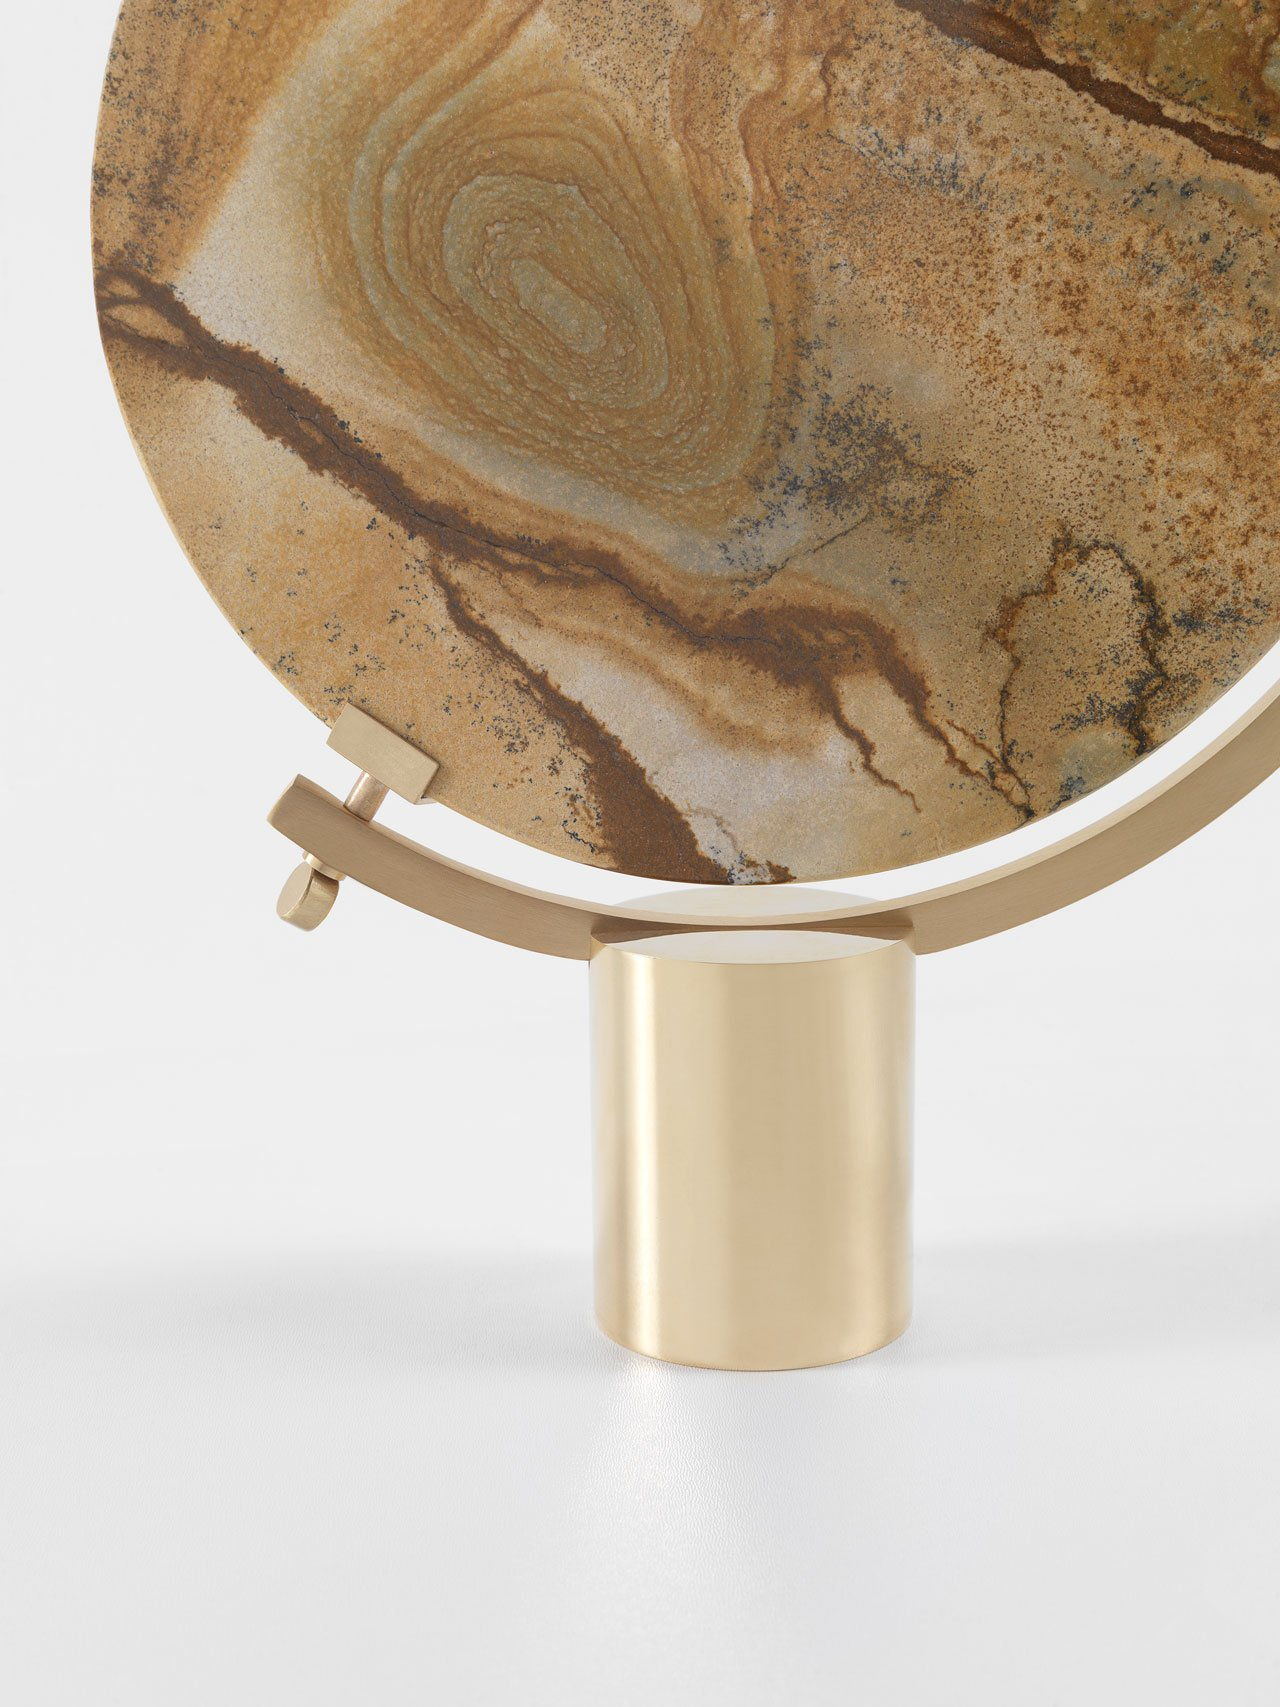 NAIA table mirror by CTRLZAK for JCP Universe.Materials: diverse marbles and super mirror steel with polished brass base and matte brass frame.Dimensions (H x W x D): 33cm x 26cm x 6cm.Photo by Silvio Macchi © JCP Universe.